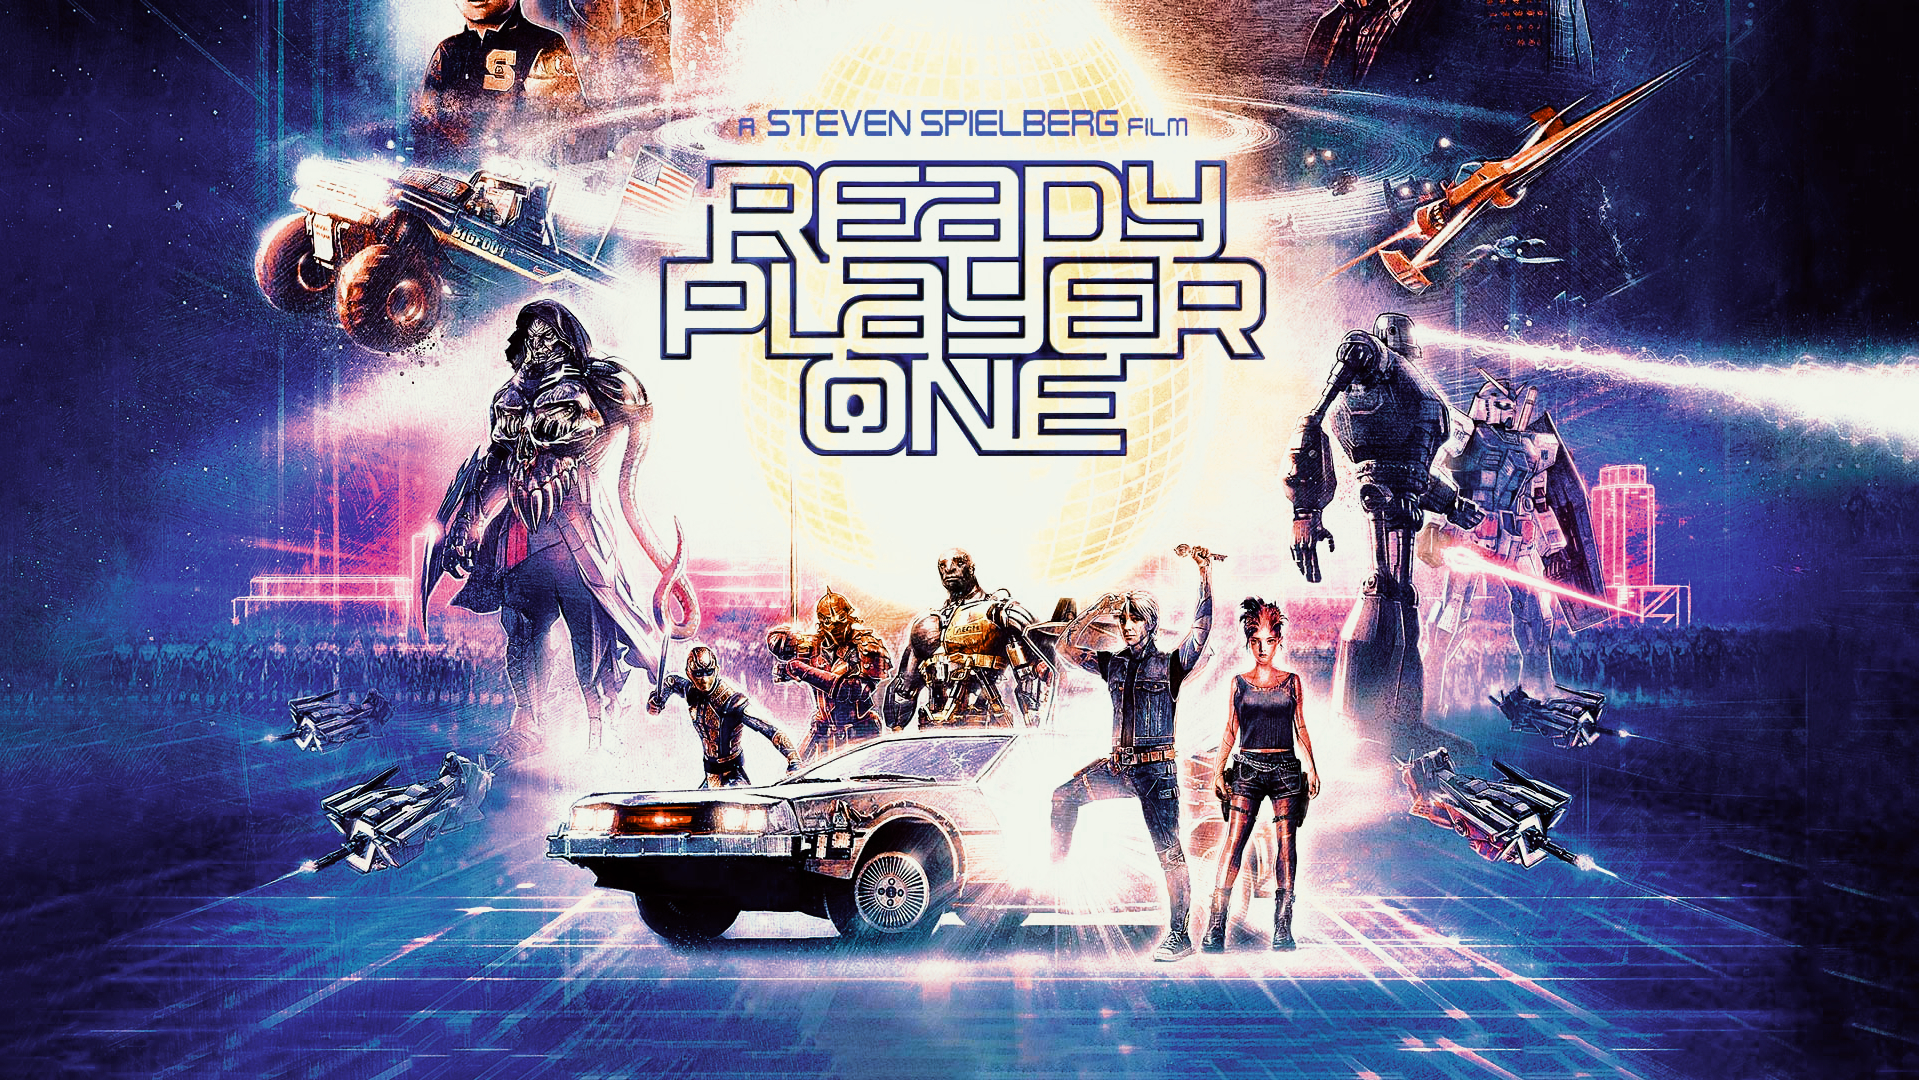 REVIEW: 'Ready Player One' is a Game Worth Playing!